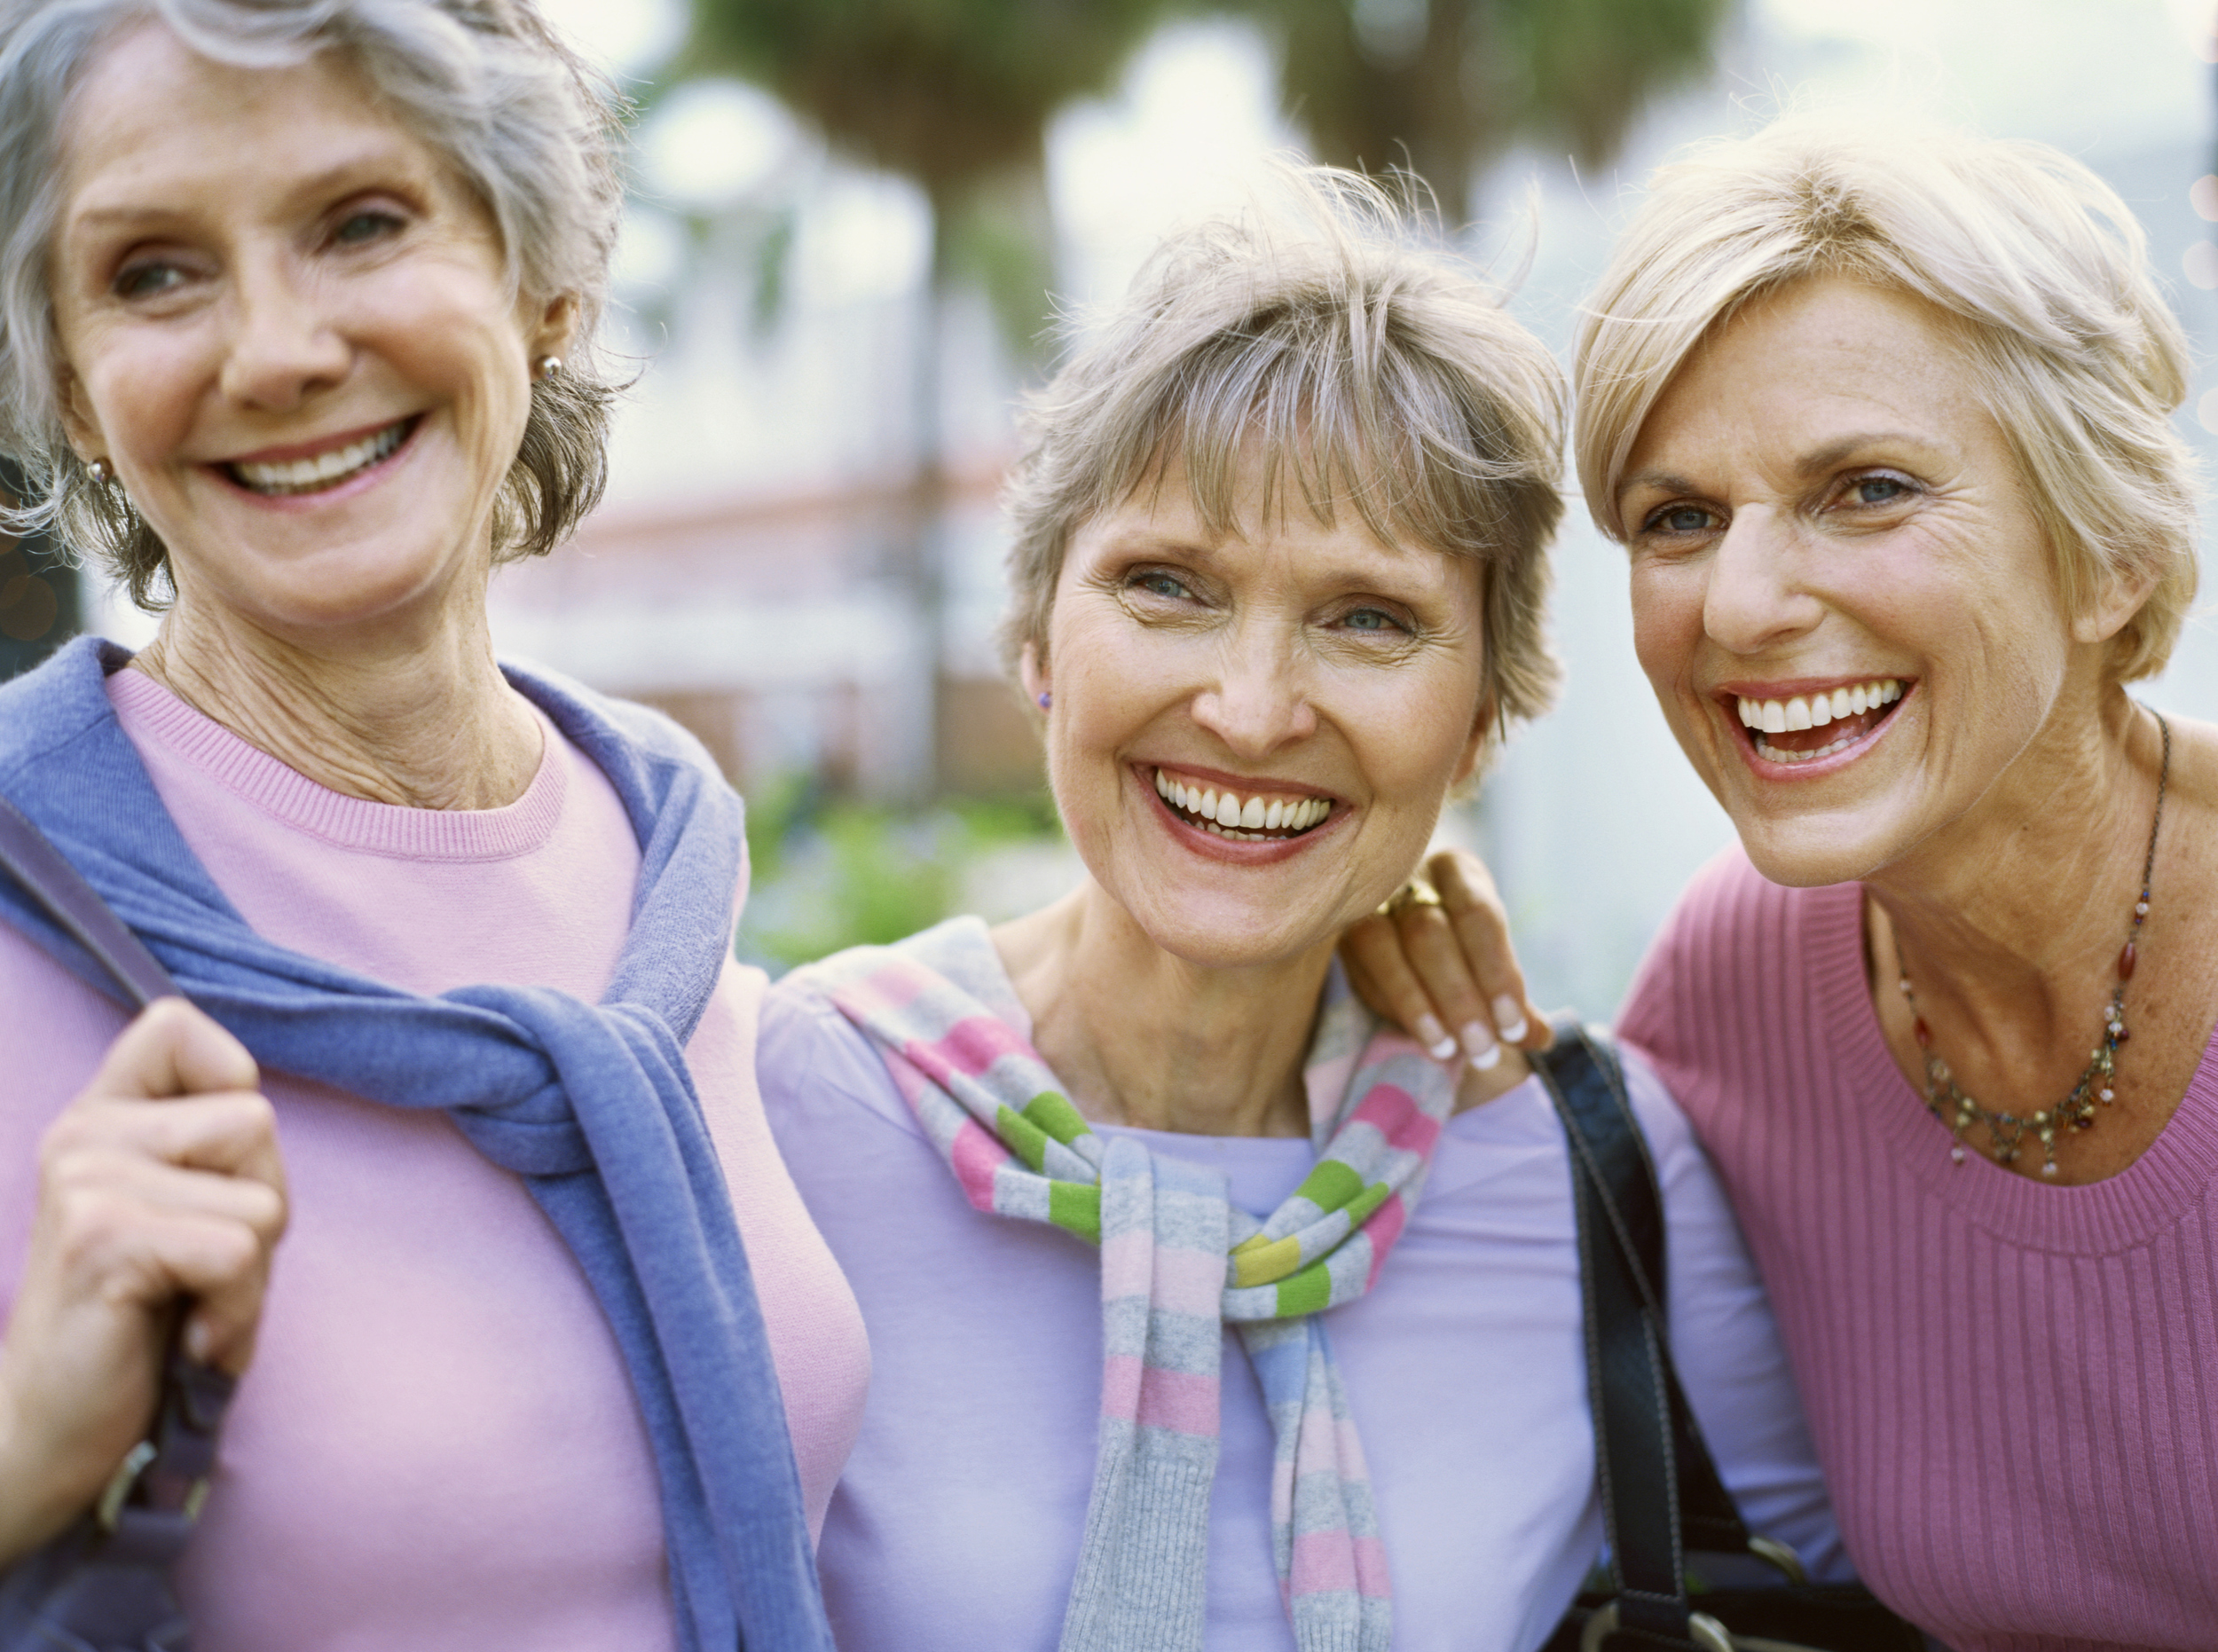 Town Center Dentistry offers All-On-Four permanent dentures to replace traditional dentures. We have All-On-Four specialists so you don't have to worry about the pitfalls of dentures anymore.